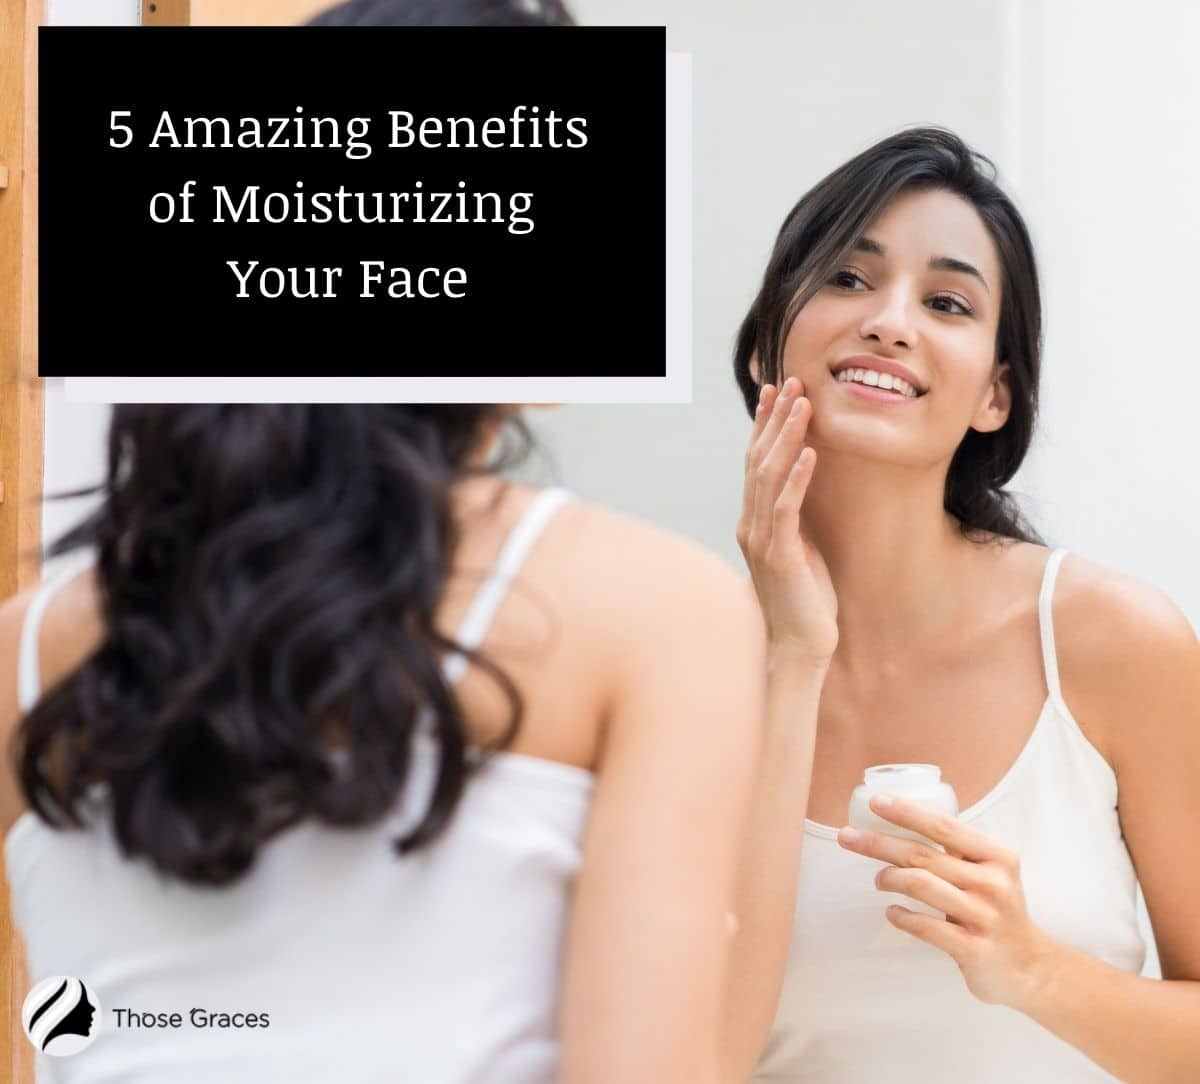 a beautiful lady putting cream on her face but what are the benefits of moisturizing face?